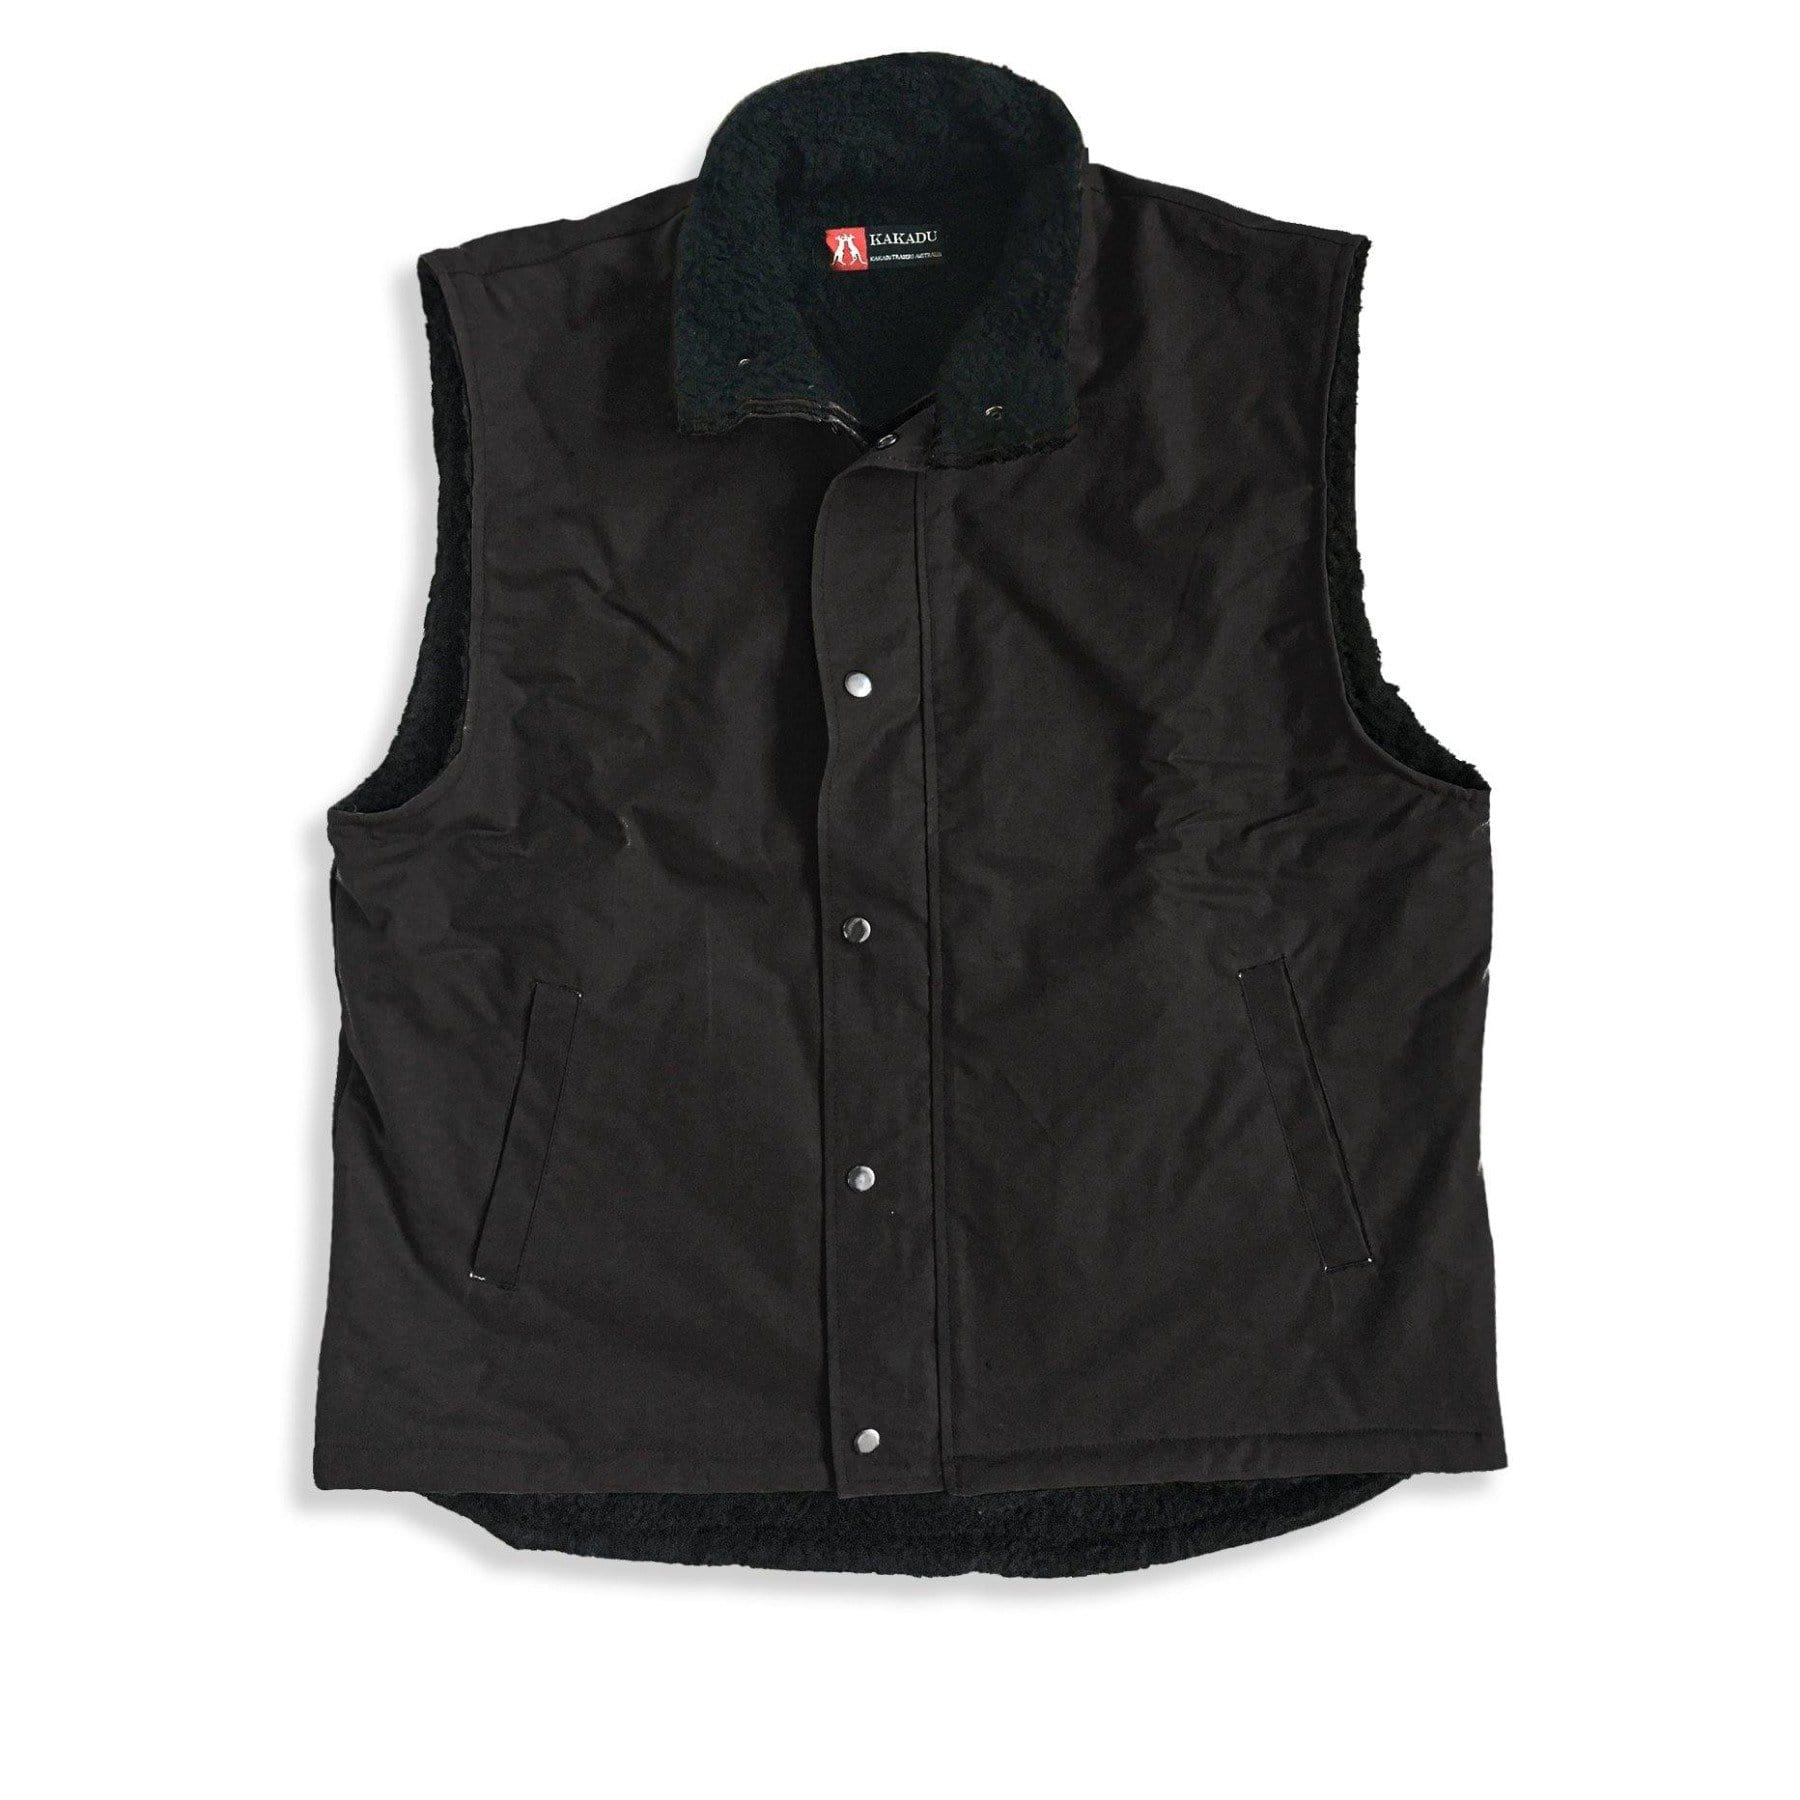 Kiwi Workhorse Vest in Black - Kakadu Traders Australia